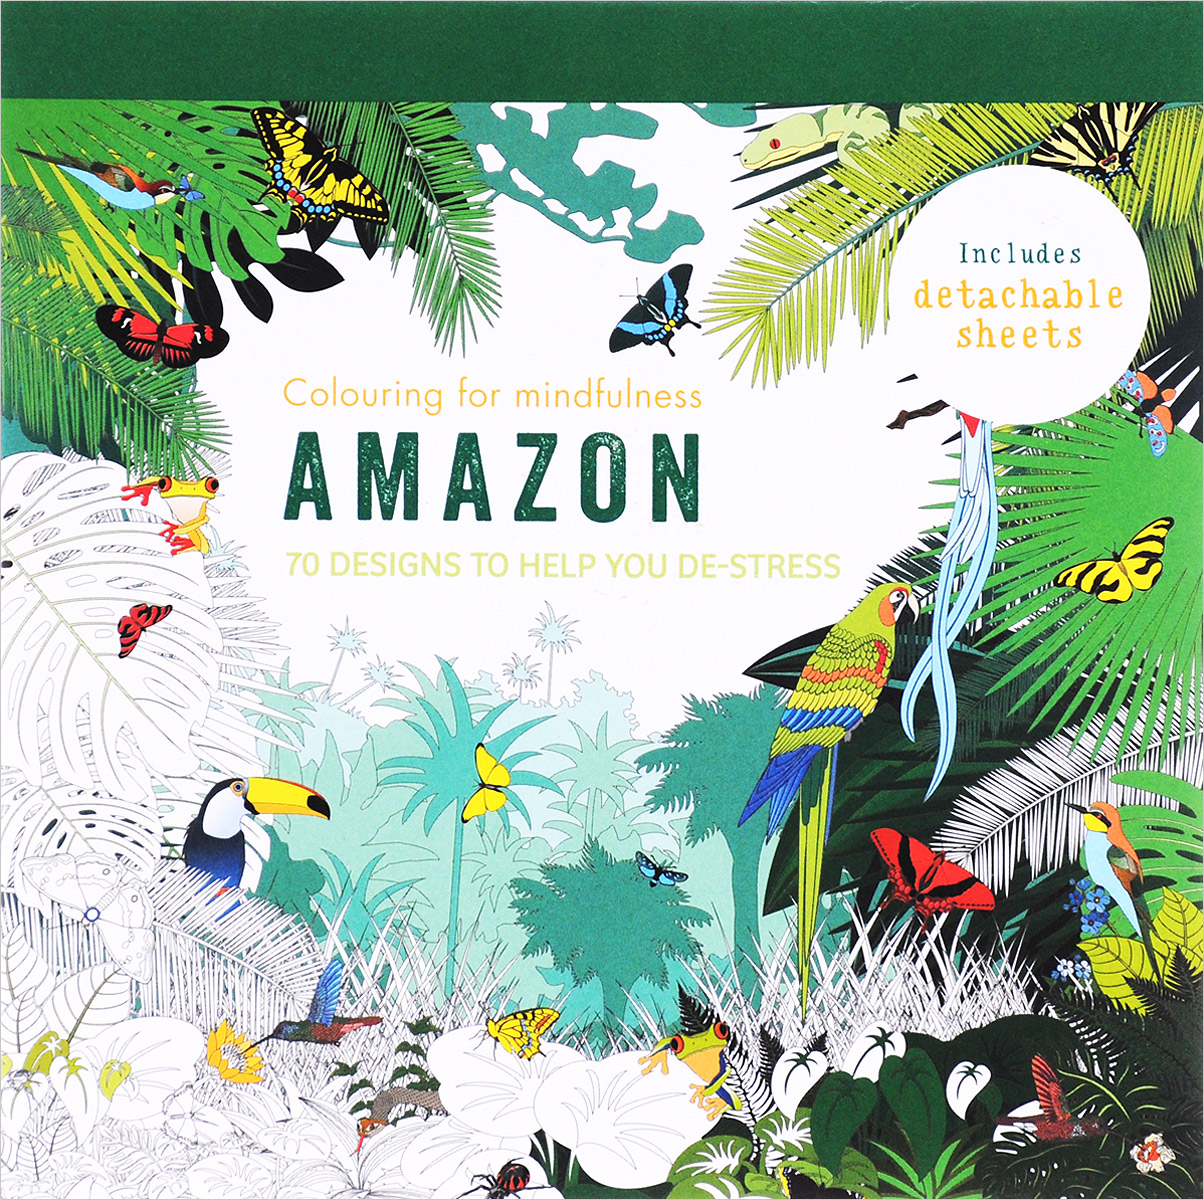 Amazon: 70 Designs to Help You De-Stress you re all my favourites